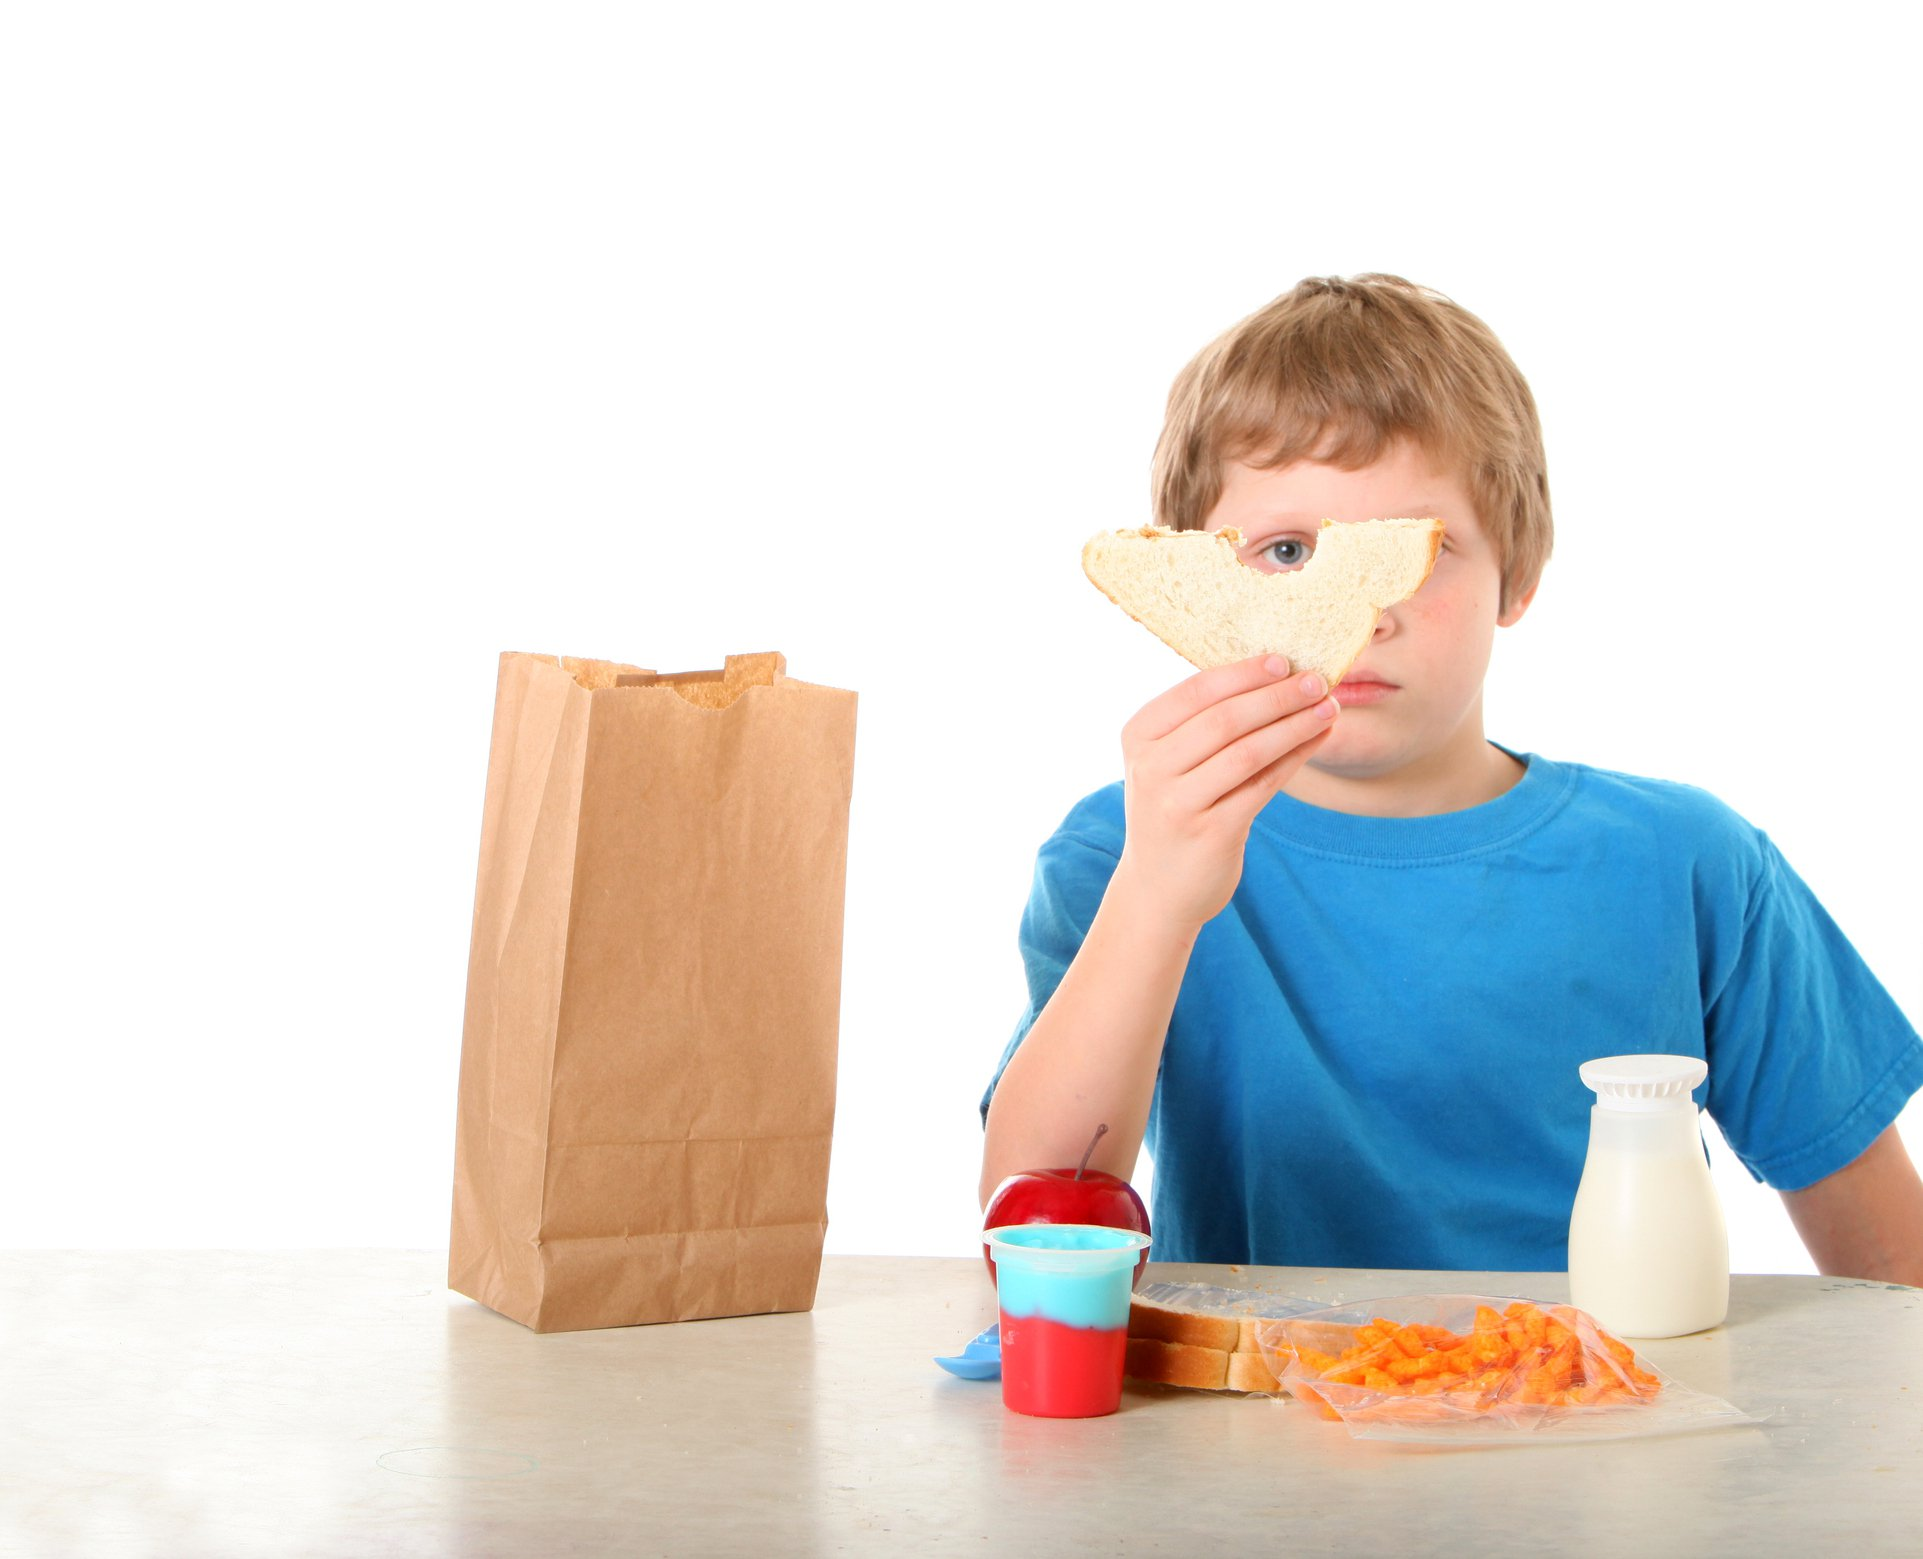 Boy at table eating an unhealthy packed school lunch